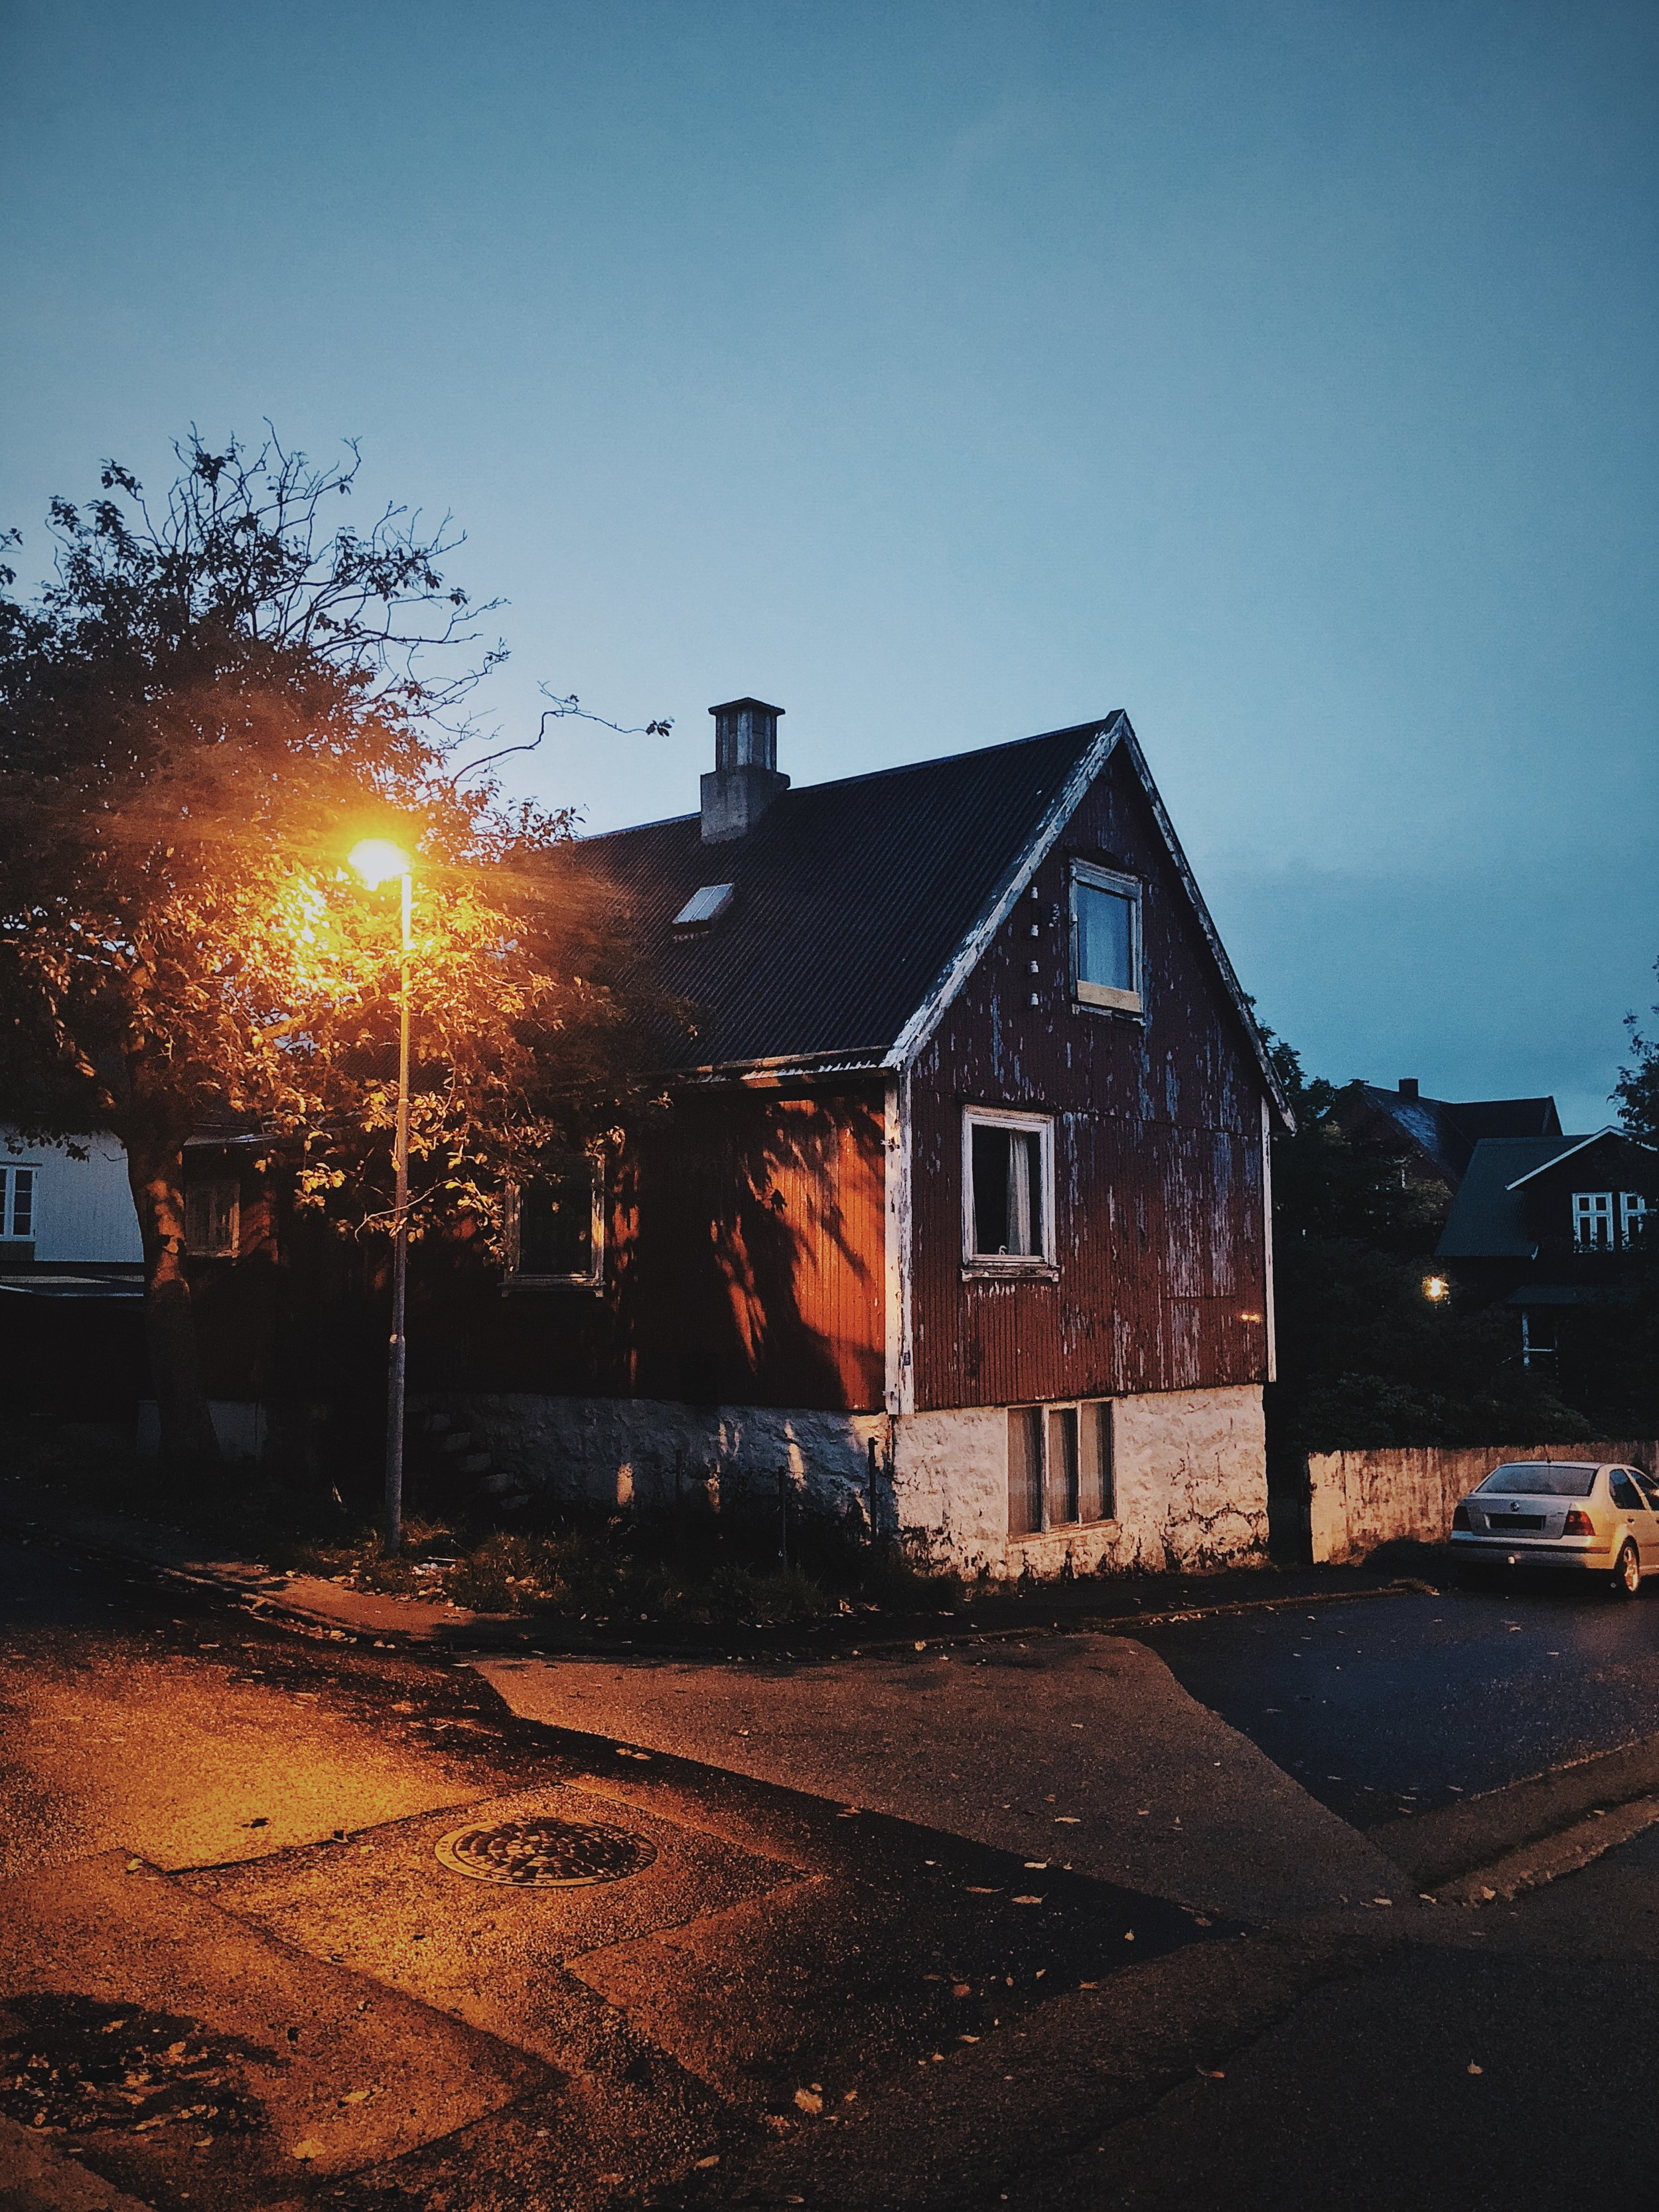 Tórshavn by night. This was the street I stayed on during my visit.